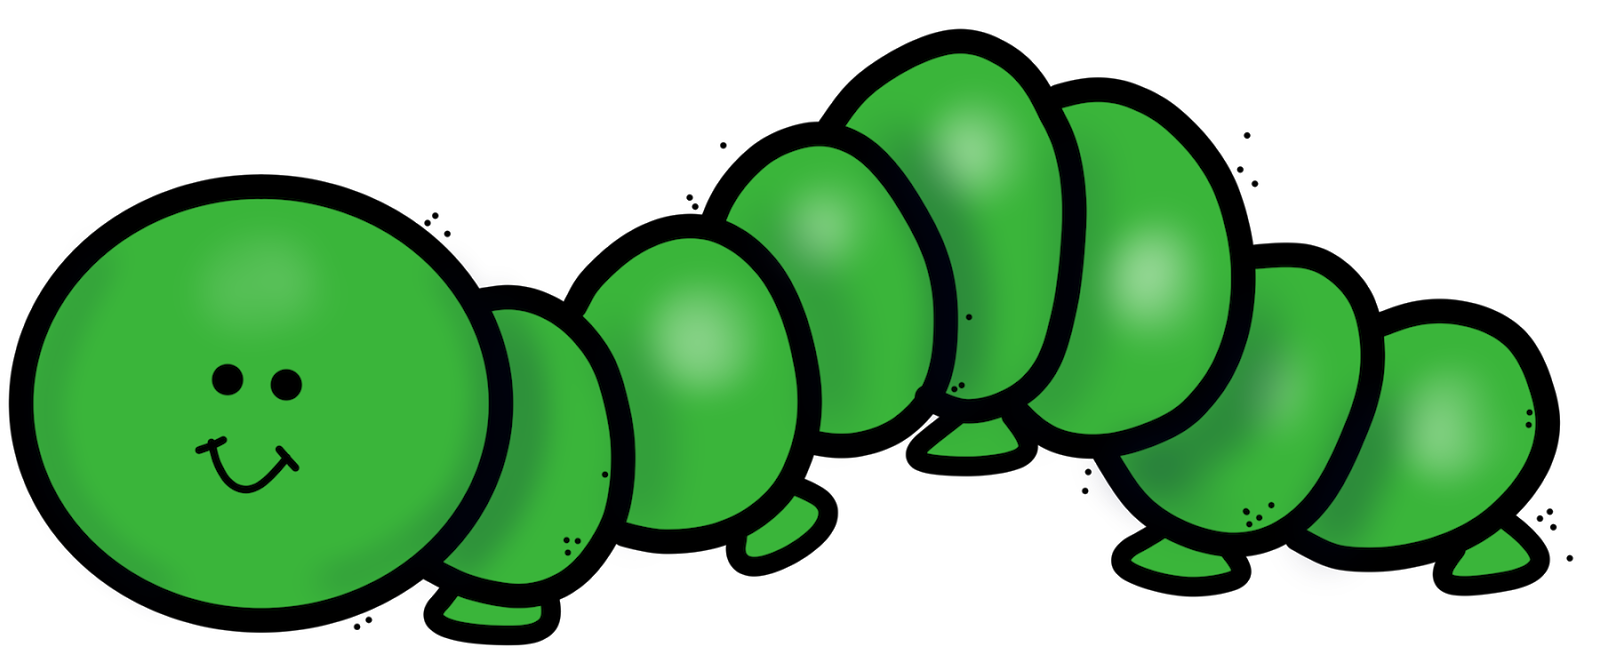 png royalty free stock Worms clipart measurement. Inchworm clip art free